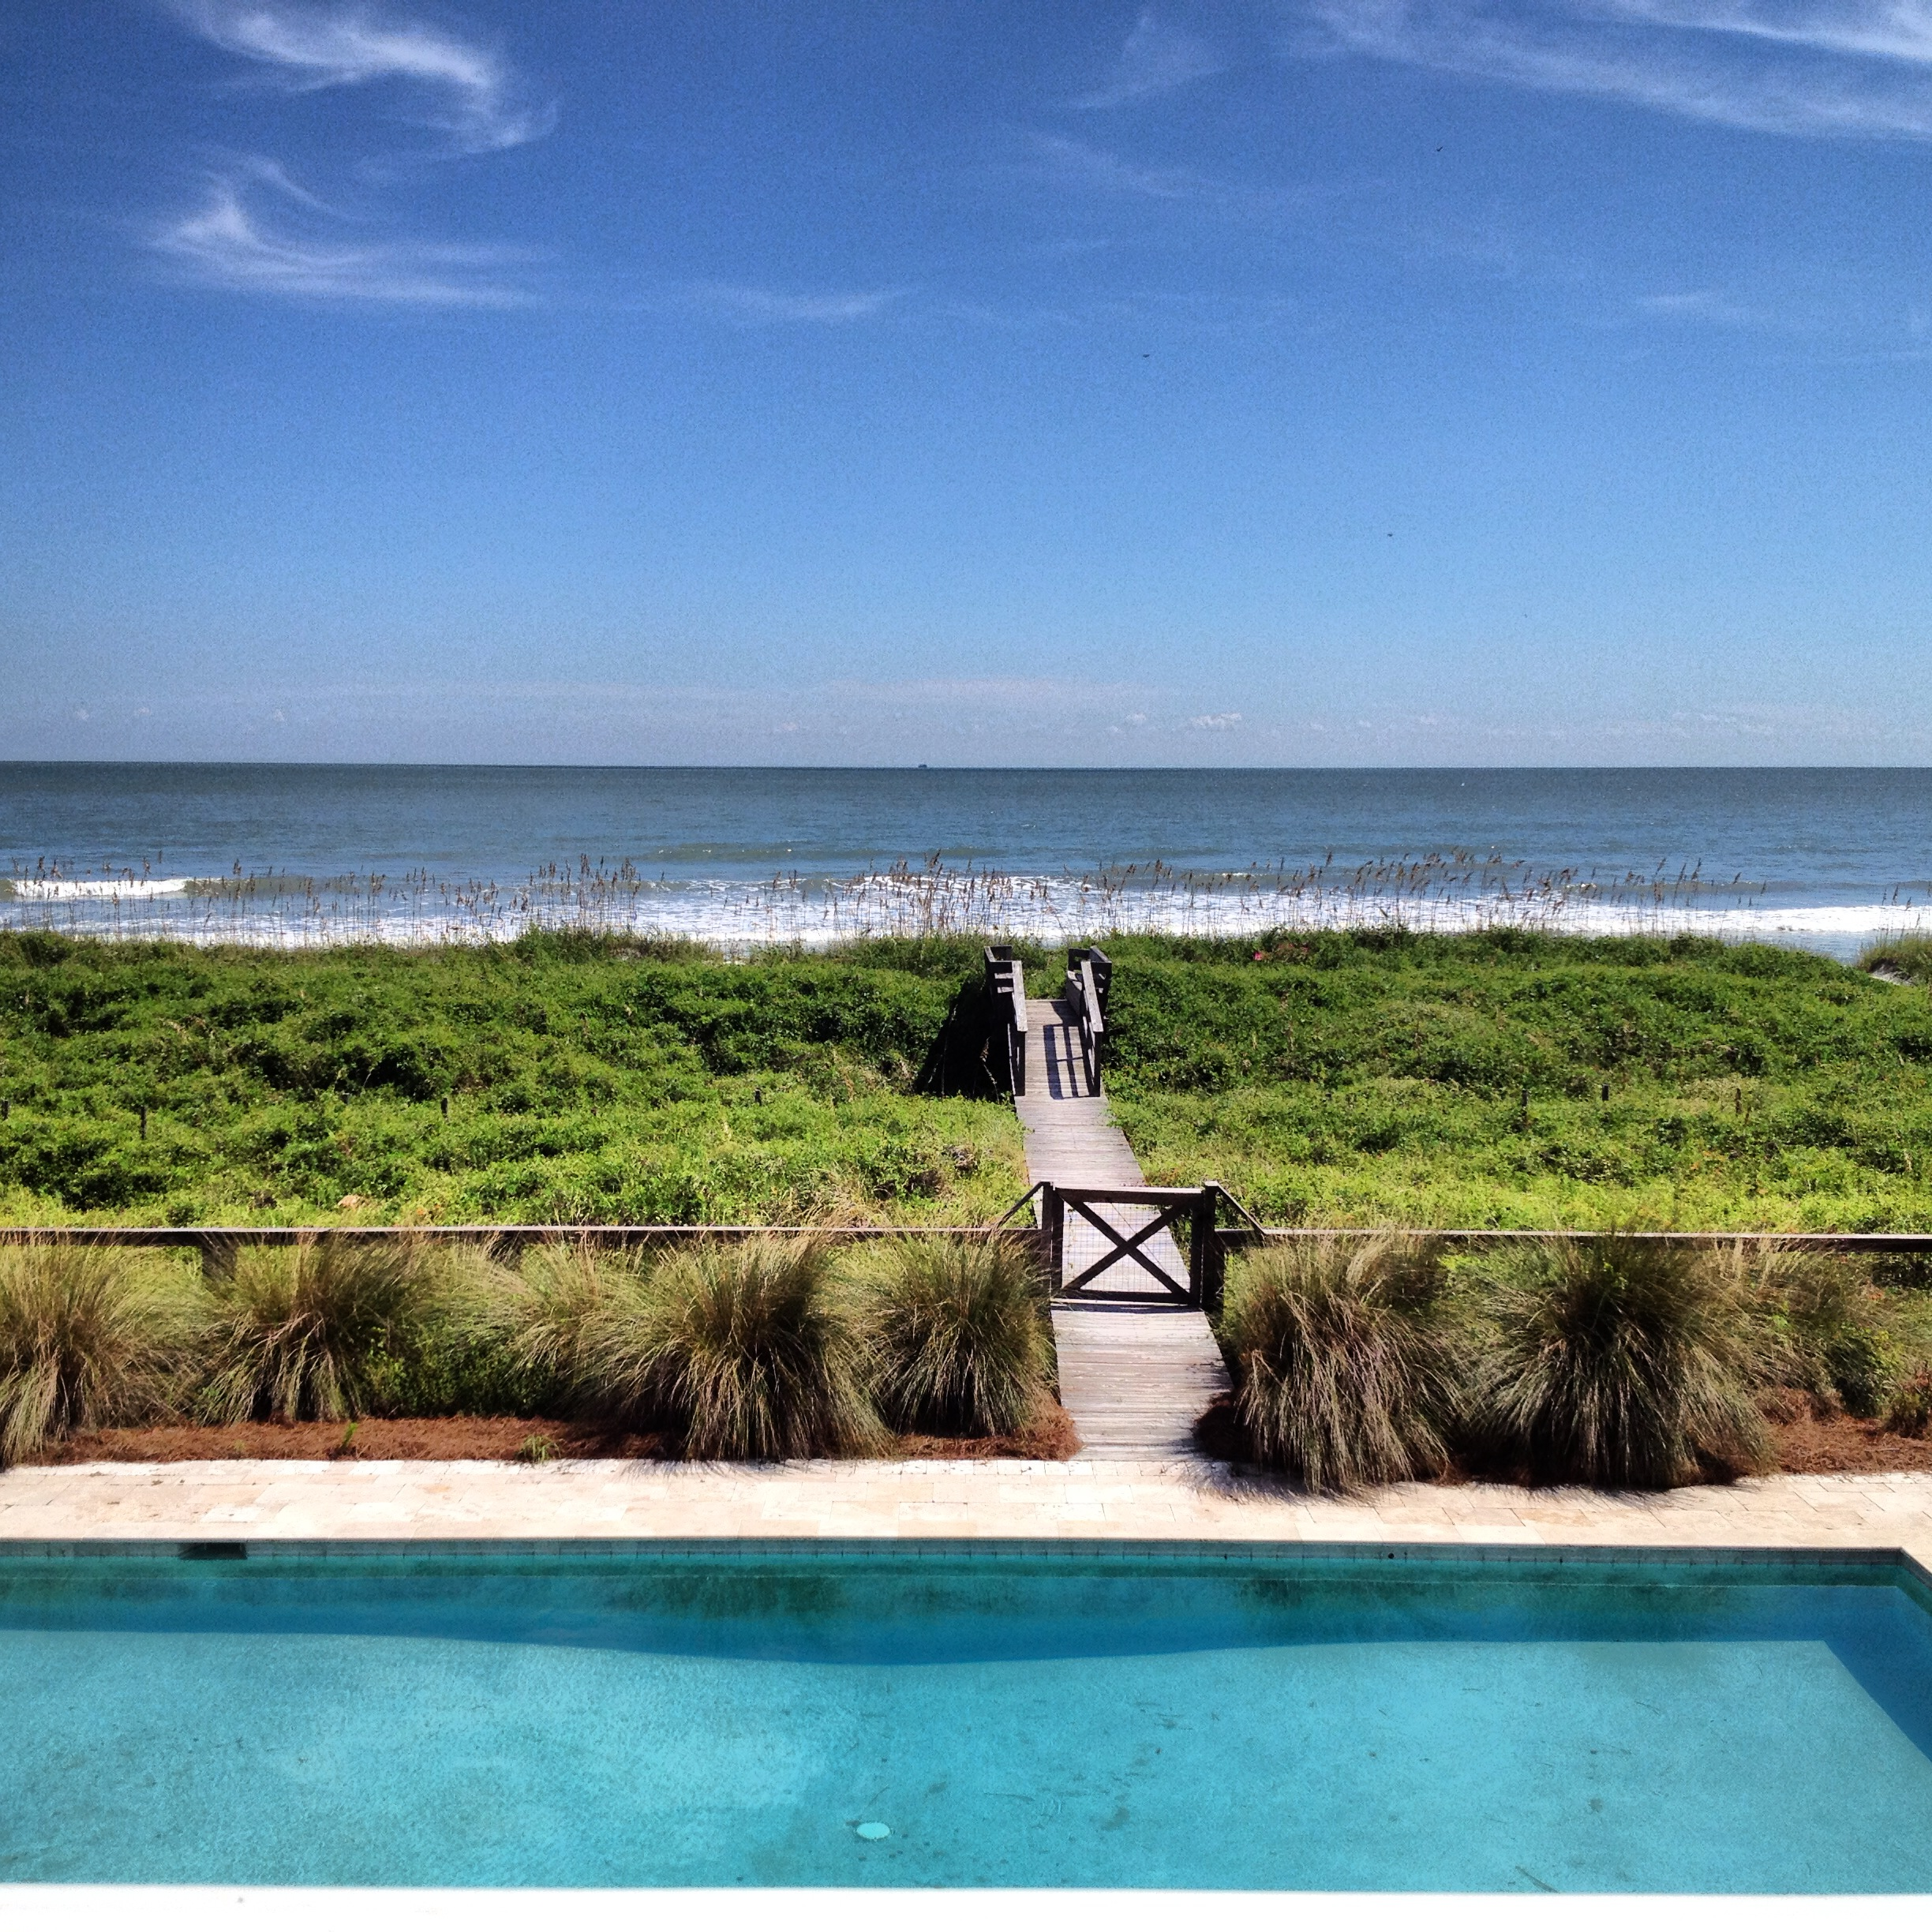 Beach House Isle Of Palms: Donnie Whitaker Real Estate & Photography